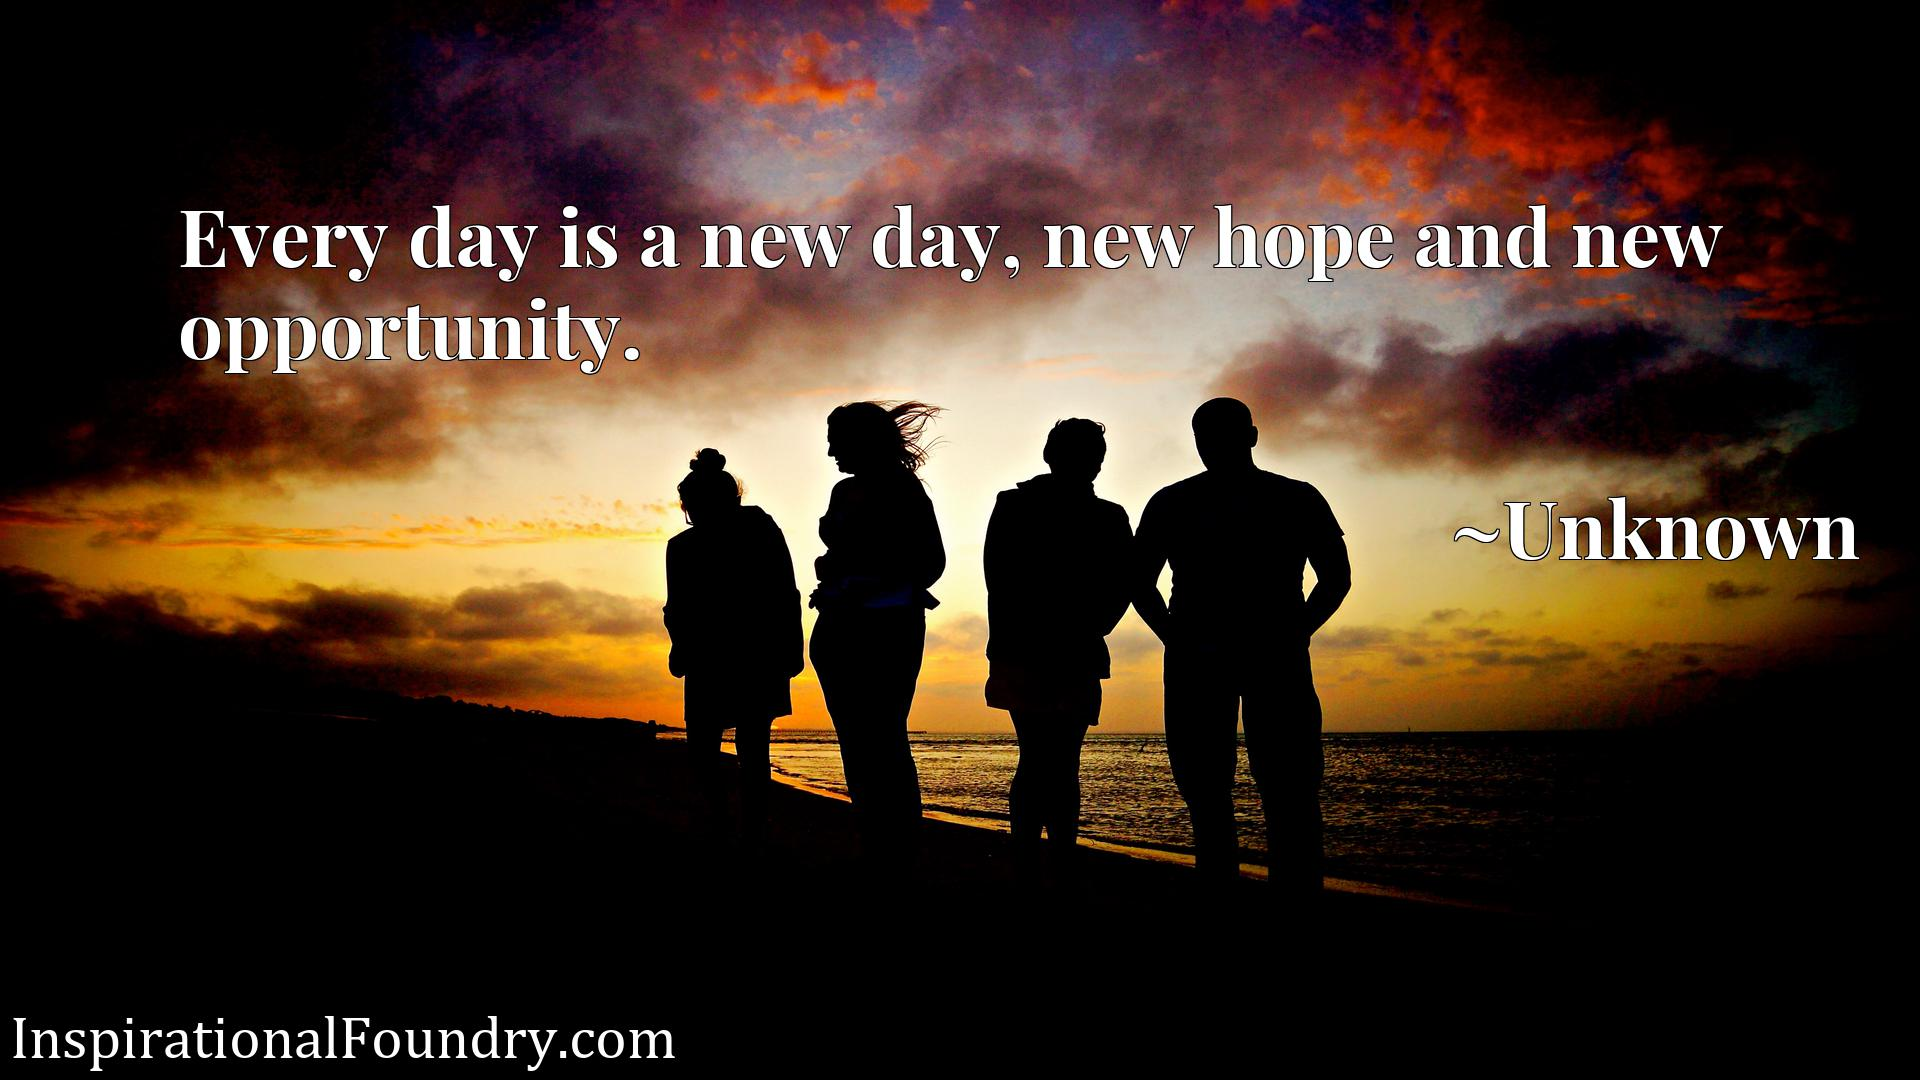 Every day is a new day, new hope and new opportunity.